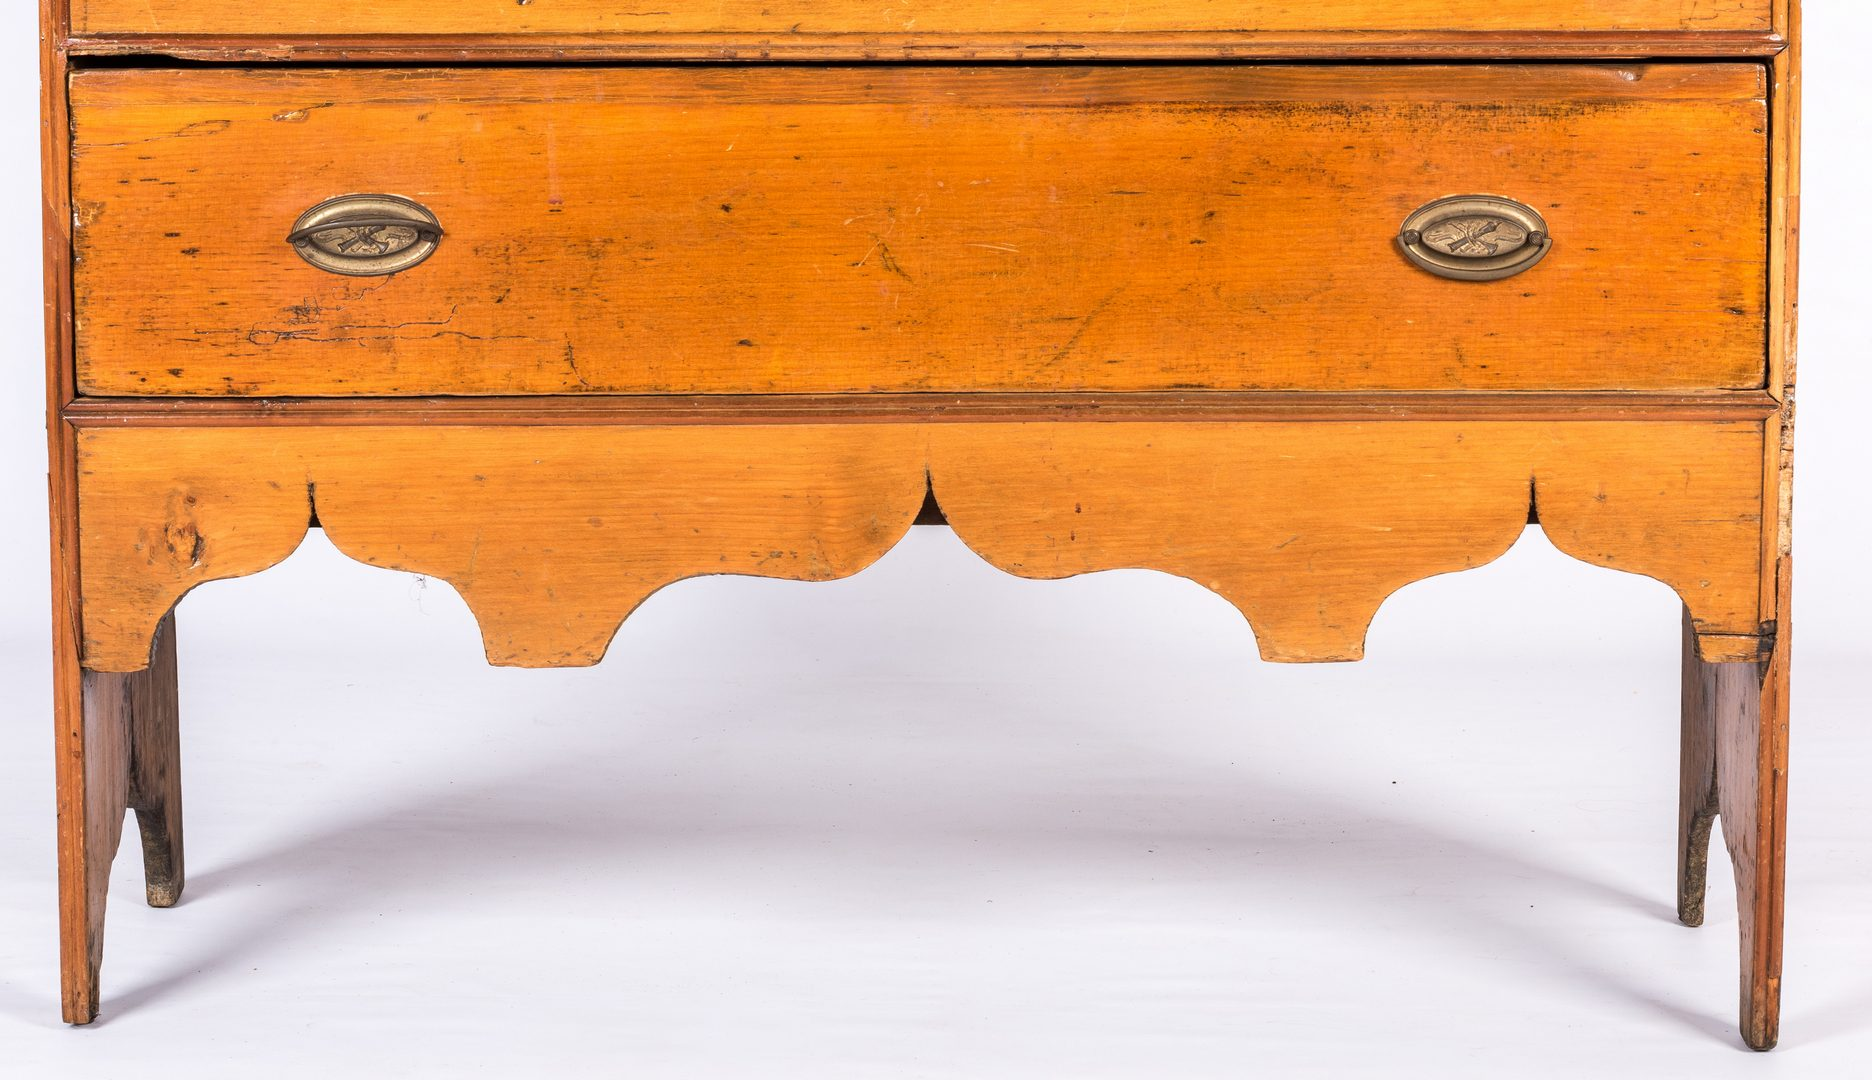 Lot 727: New England Tall Pine Blanket Chest, 18th Cent.